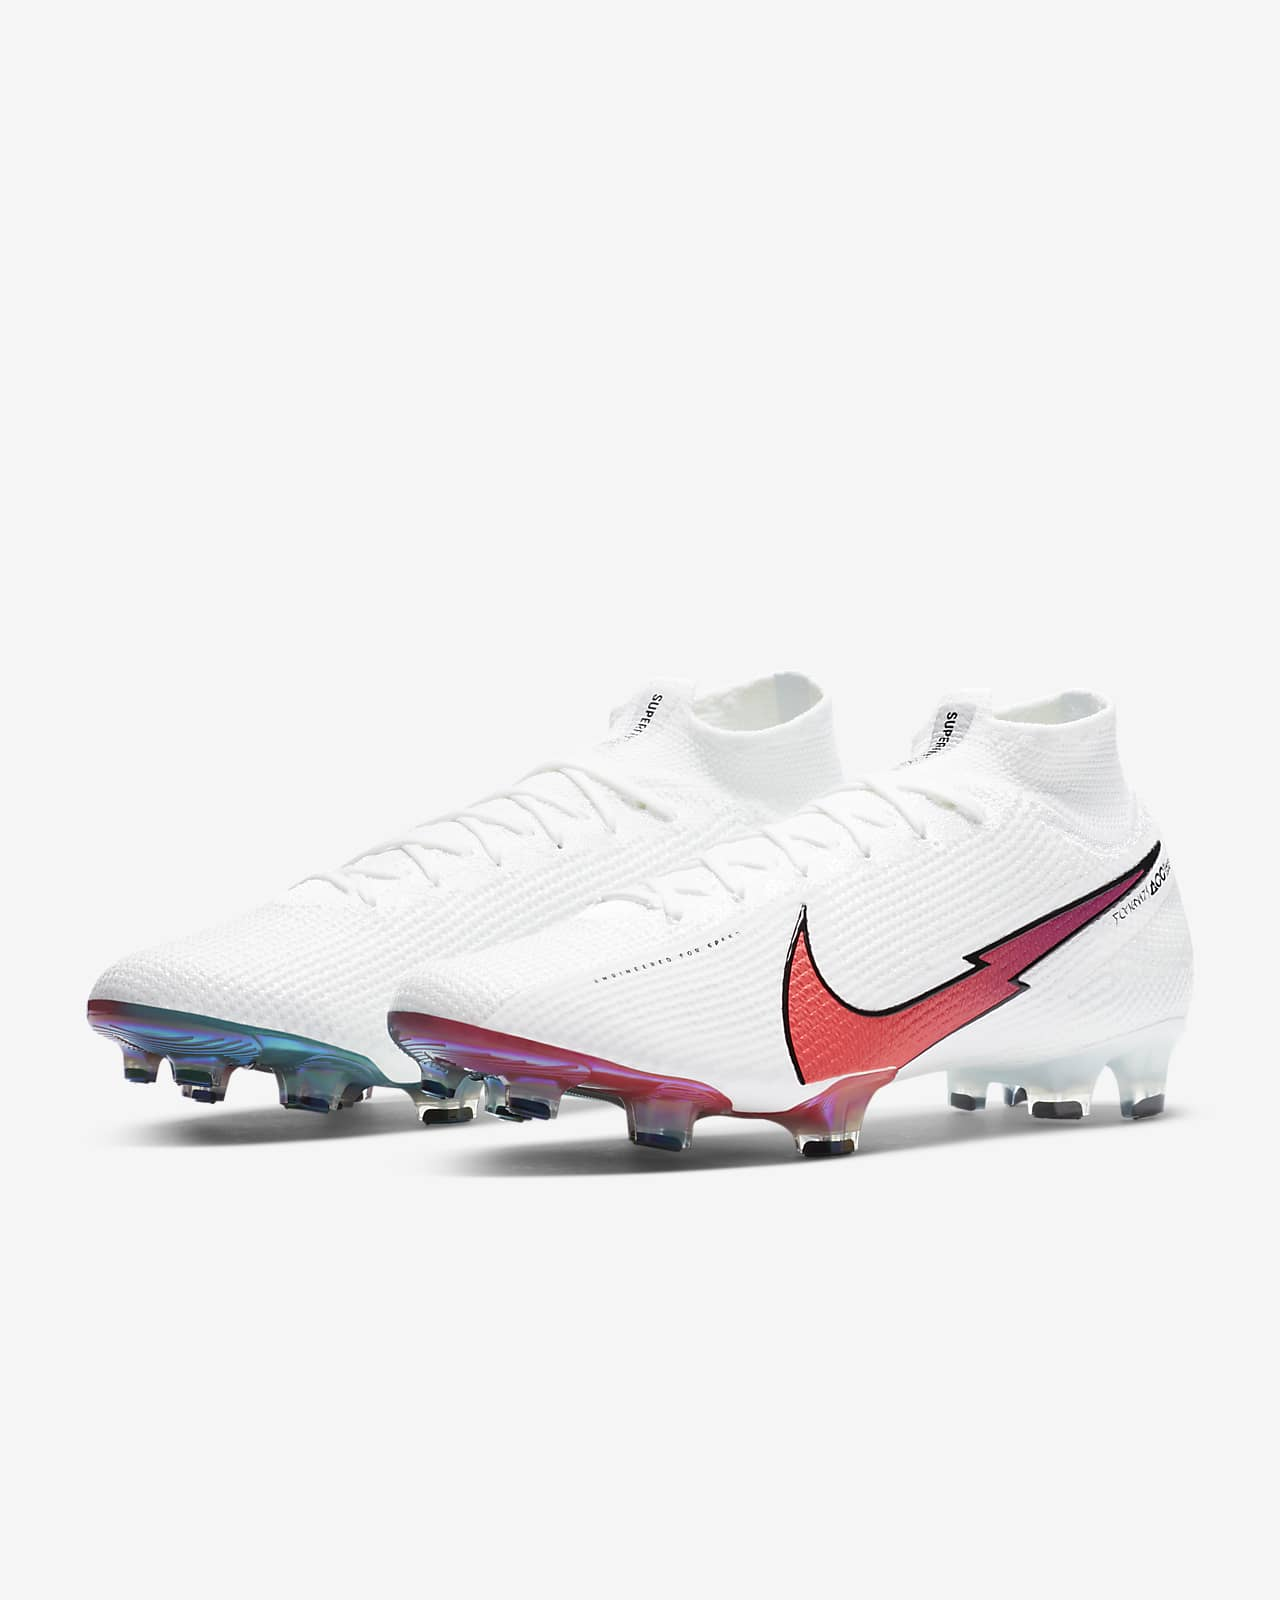 Nike Mercurial Superfly 7 Elite Fg Firm Ground Soccer Cleat Nike Com